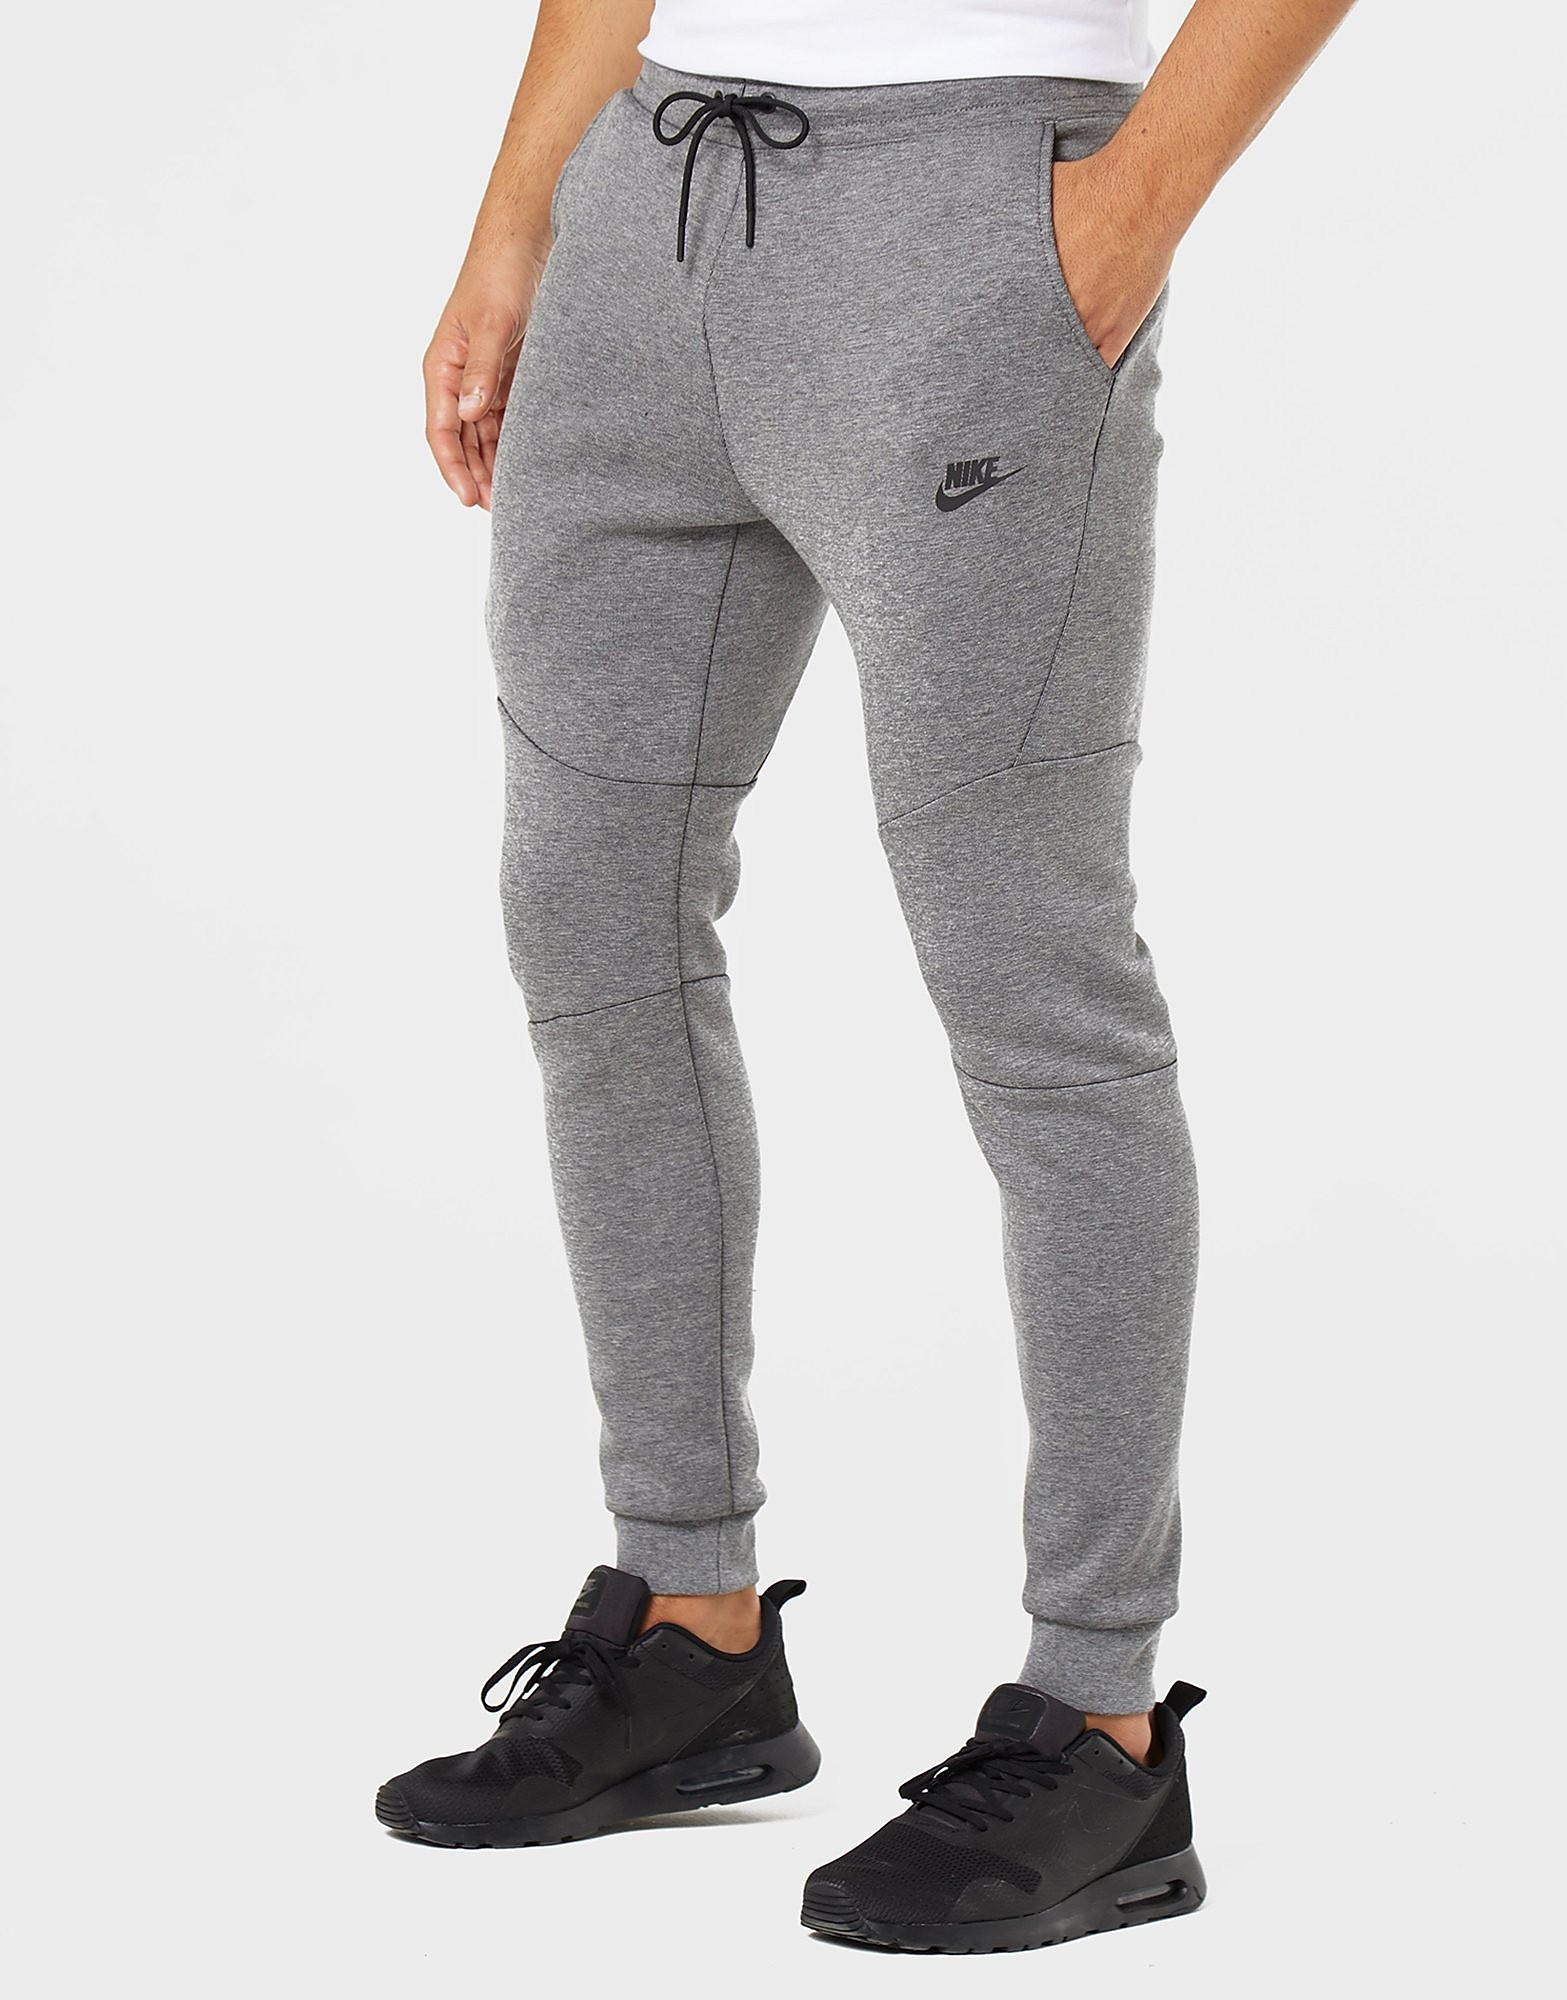 Nike Tech Fleece Pants